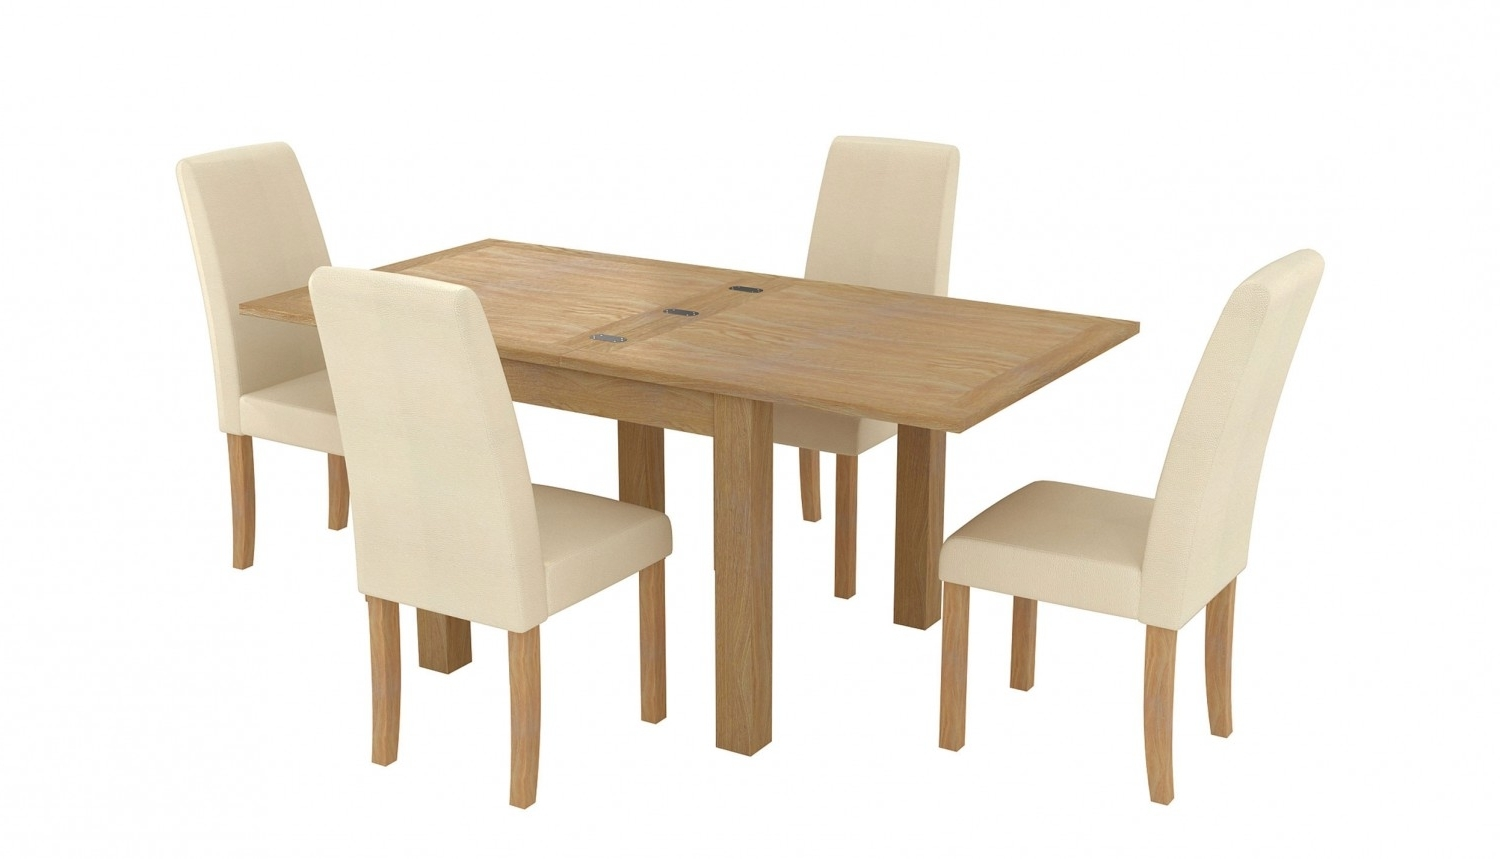 Aspen 900 1800 Flip Top Table & 4 Baltimore Chairs In Most Current Flip Top Oak Dining Tables (View 3 of 25)